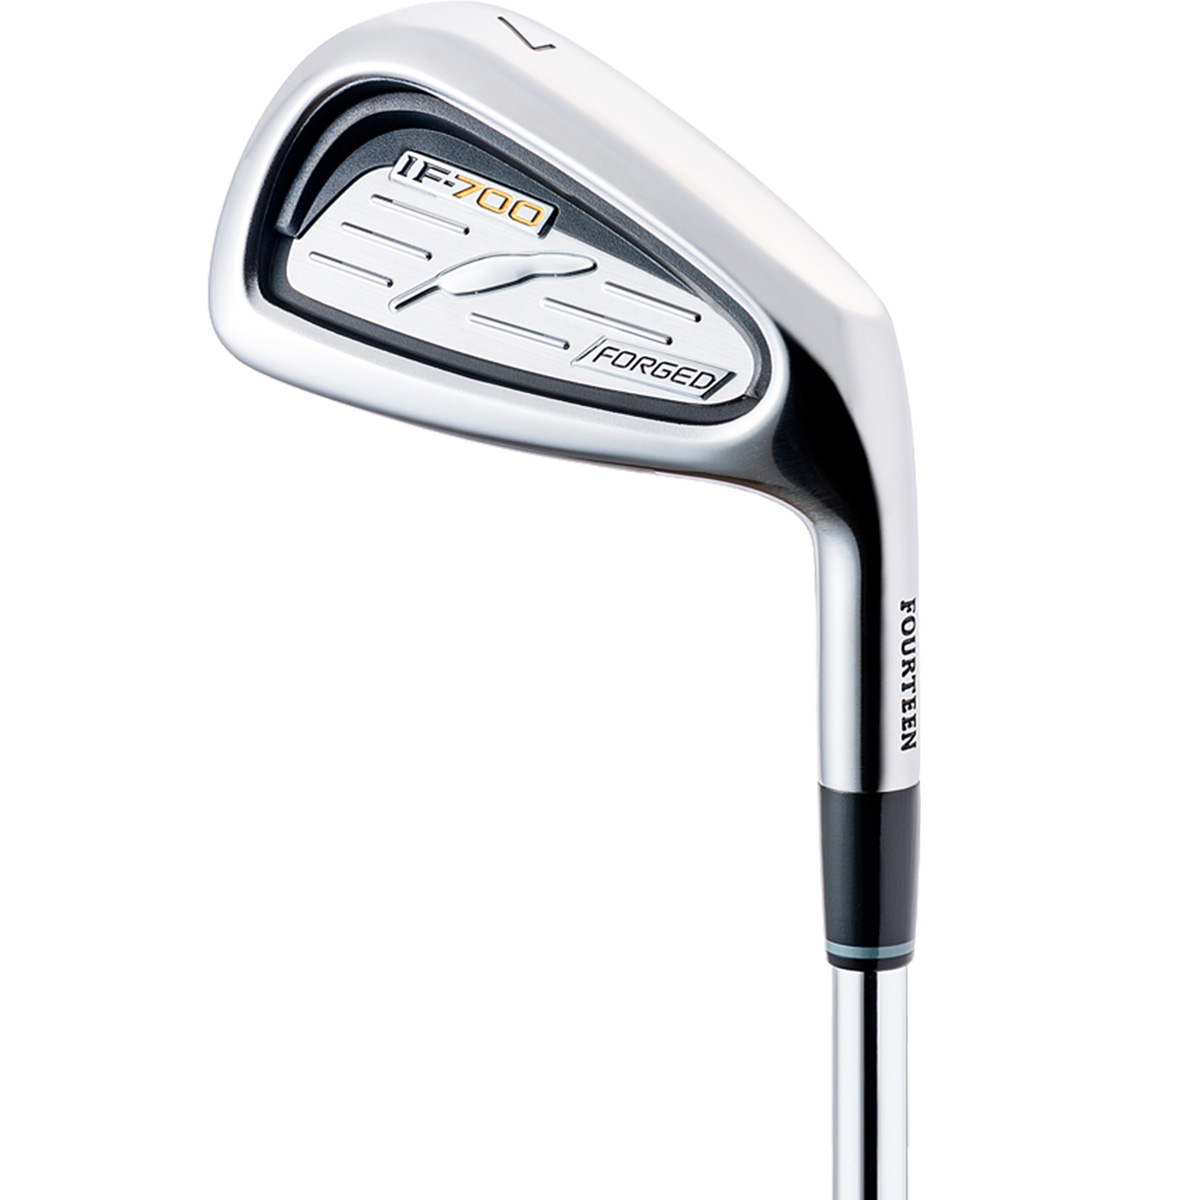 IF-700 FORGED アイアン(単品) N.S.PRO MODUS3 SYSTEM3 TOUR 125